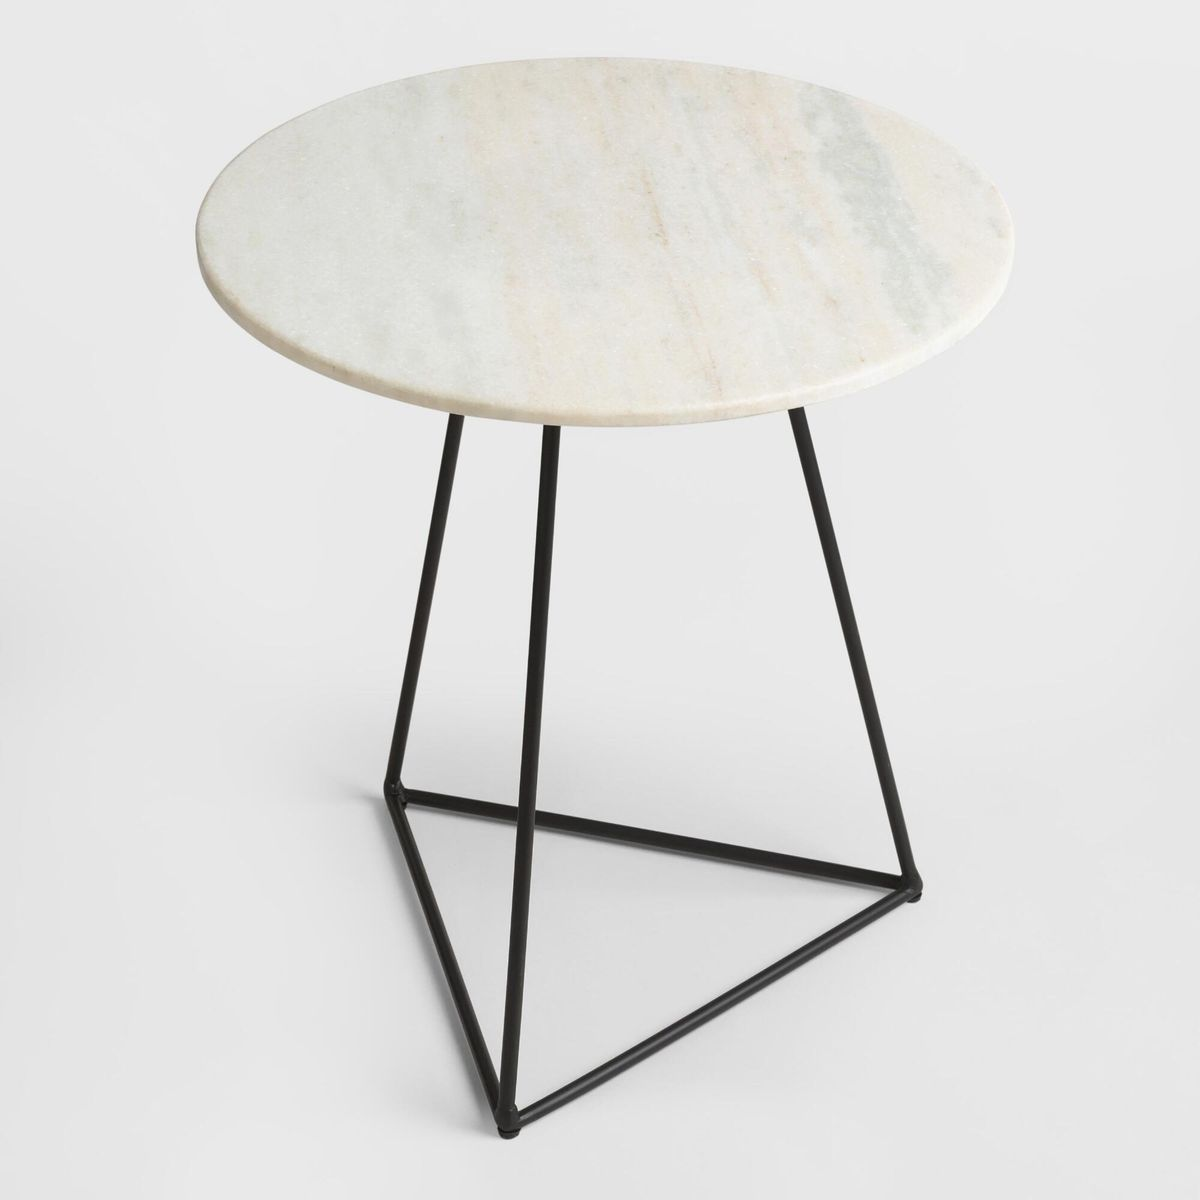 best side tables under curbed xxx walnut one drawer accent table project white marble and metal round tablecloth size for cocktail decorative corners black oval coffee west elm